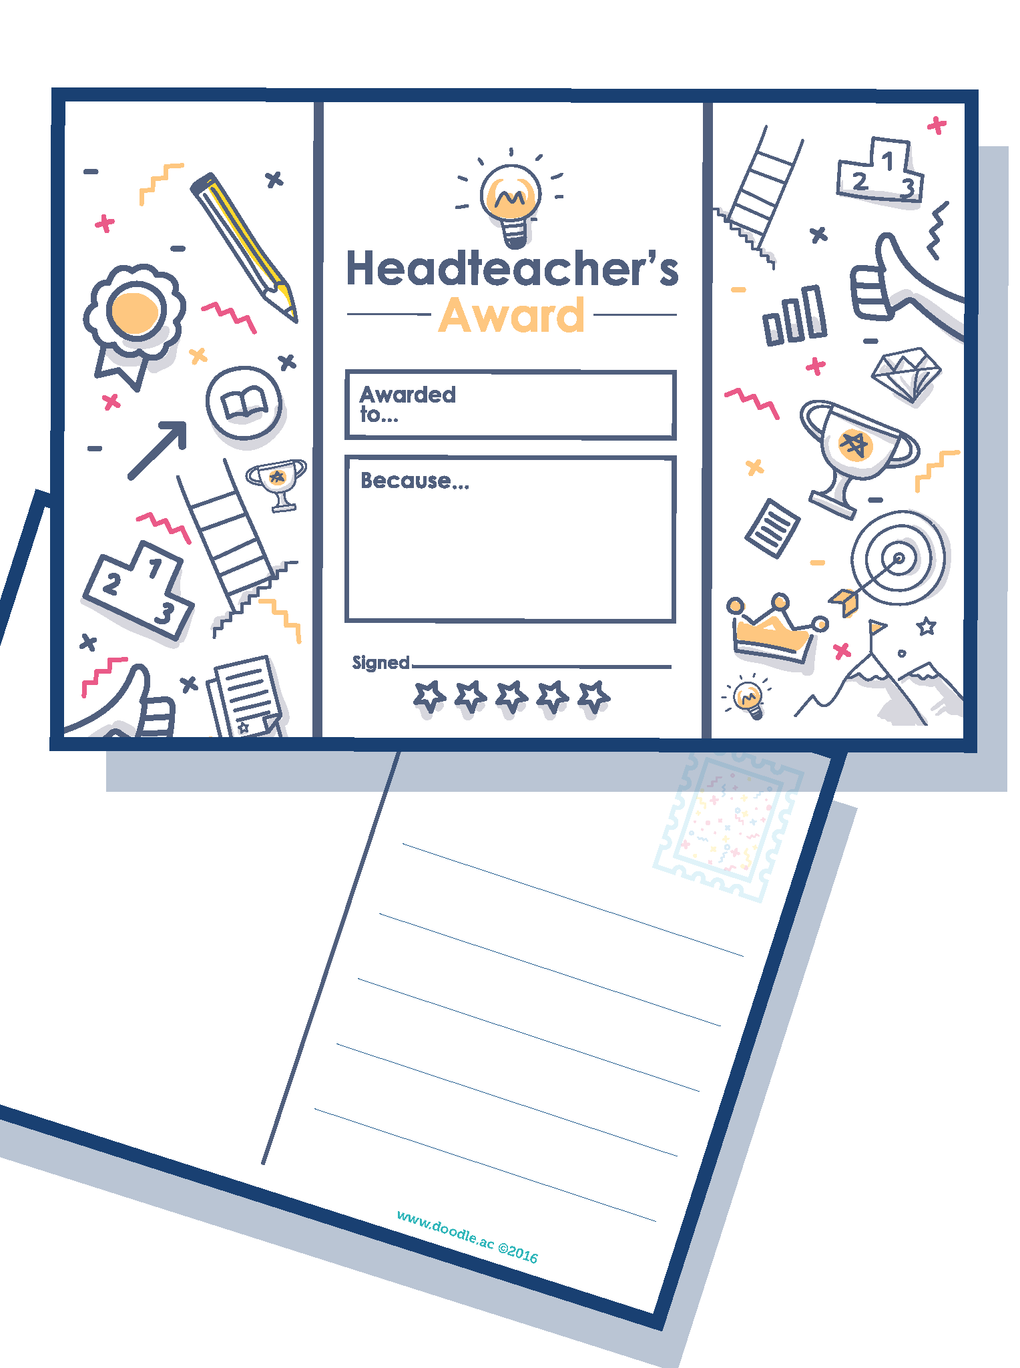 Headteacher award postcard